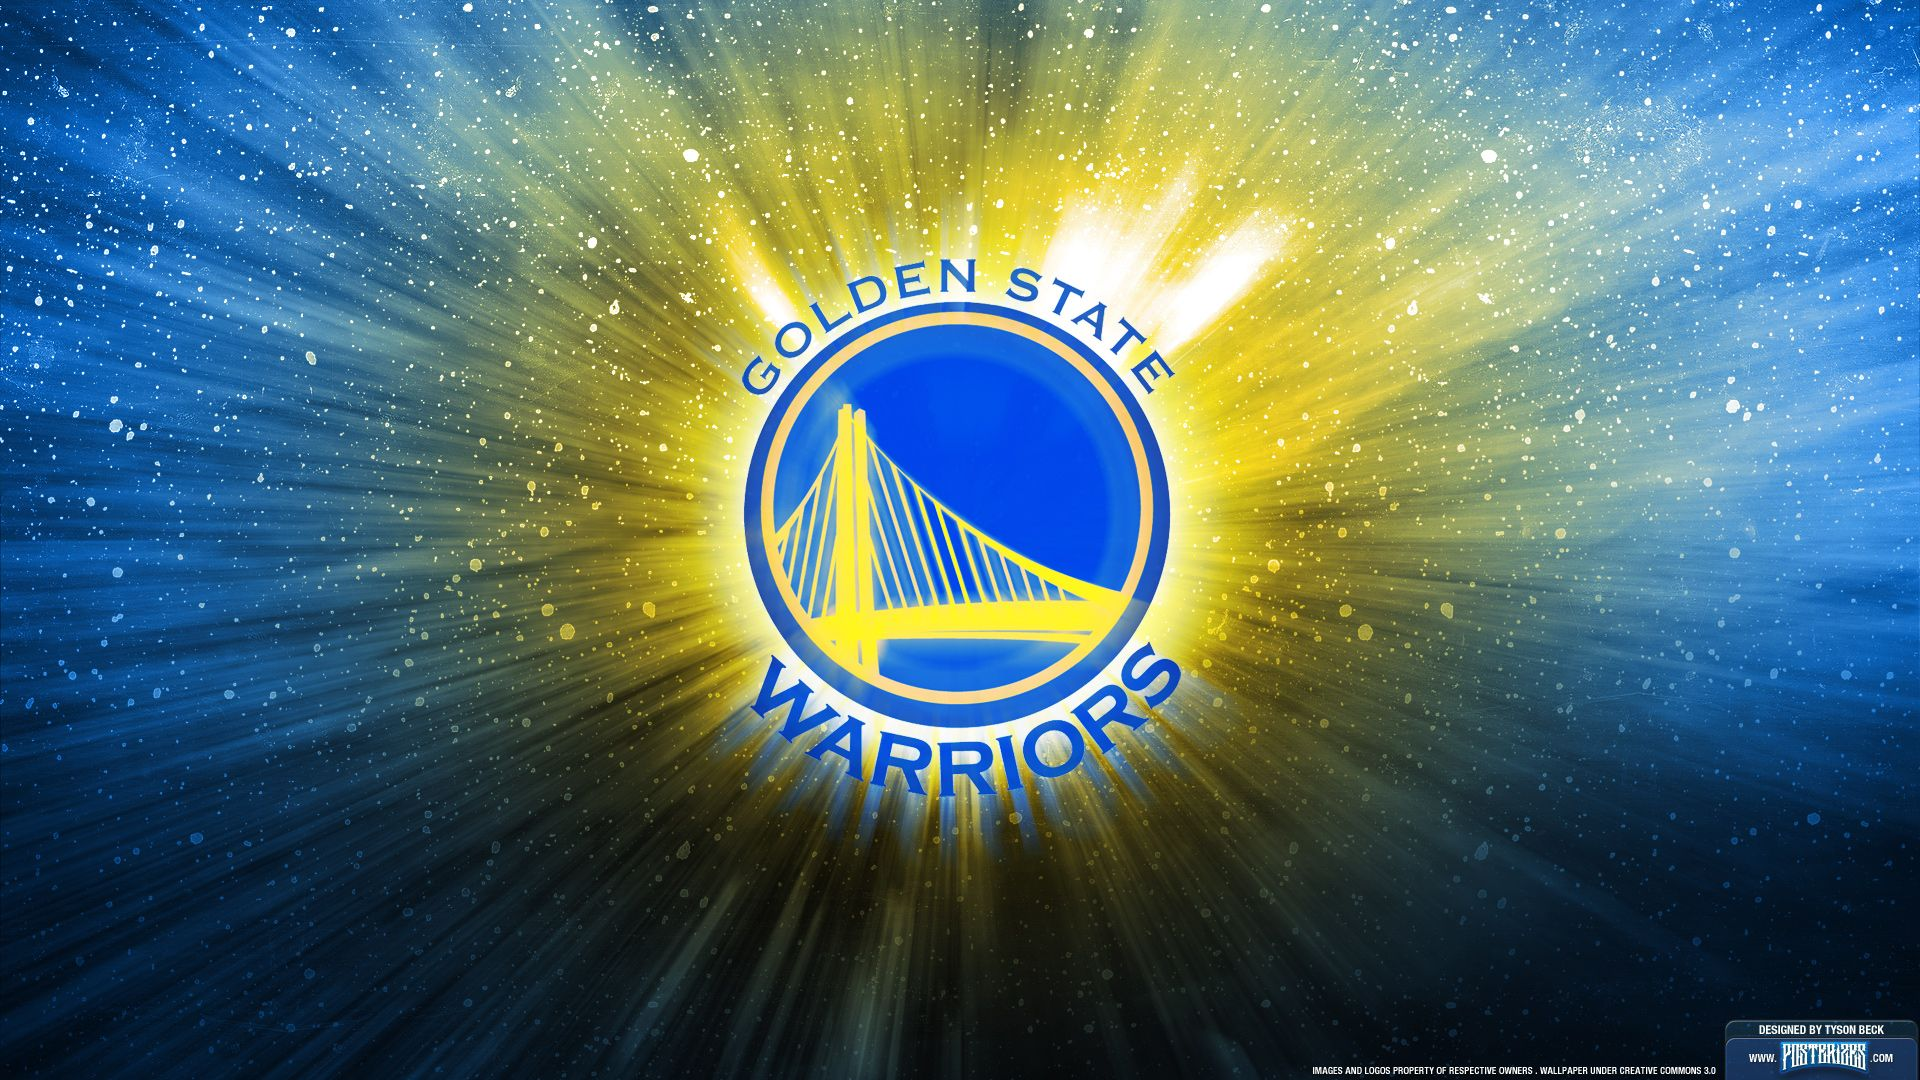 golden state warriors | Golden State Warriors Logo Wallpaper